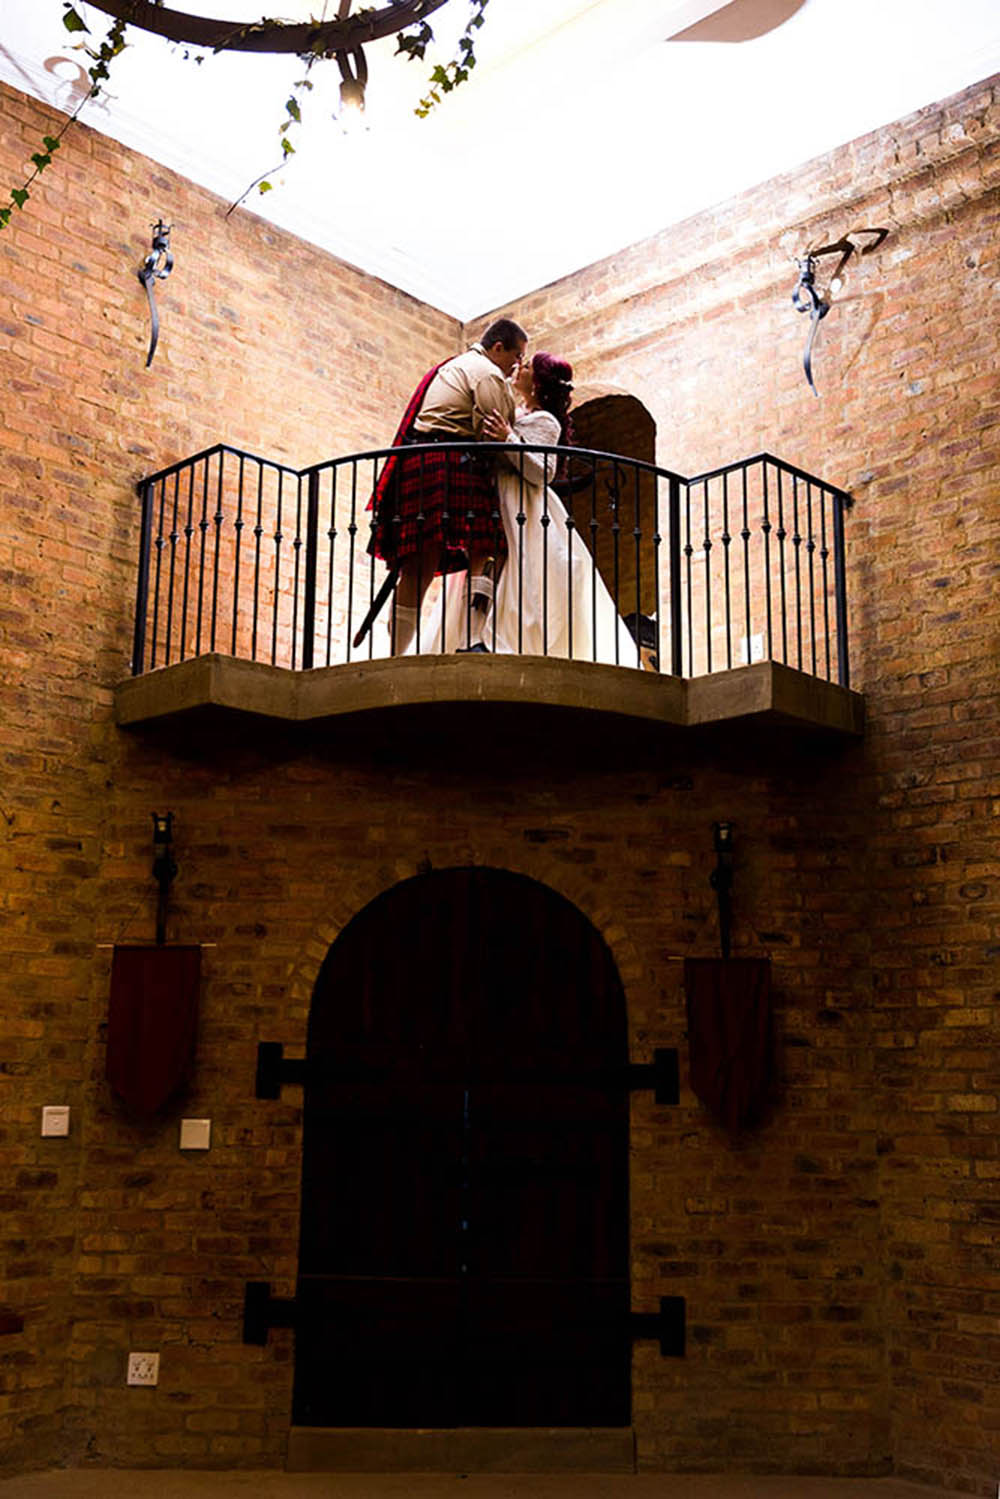 medieval-themed-wedding-medieval-wedding-dgr-photography-castle-wedding-94